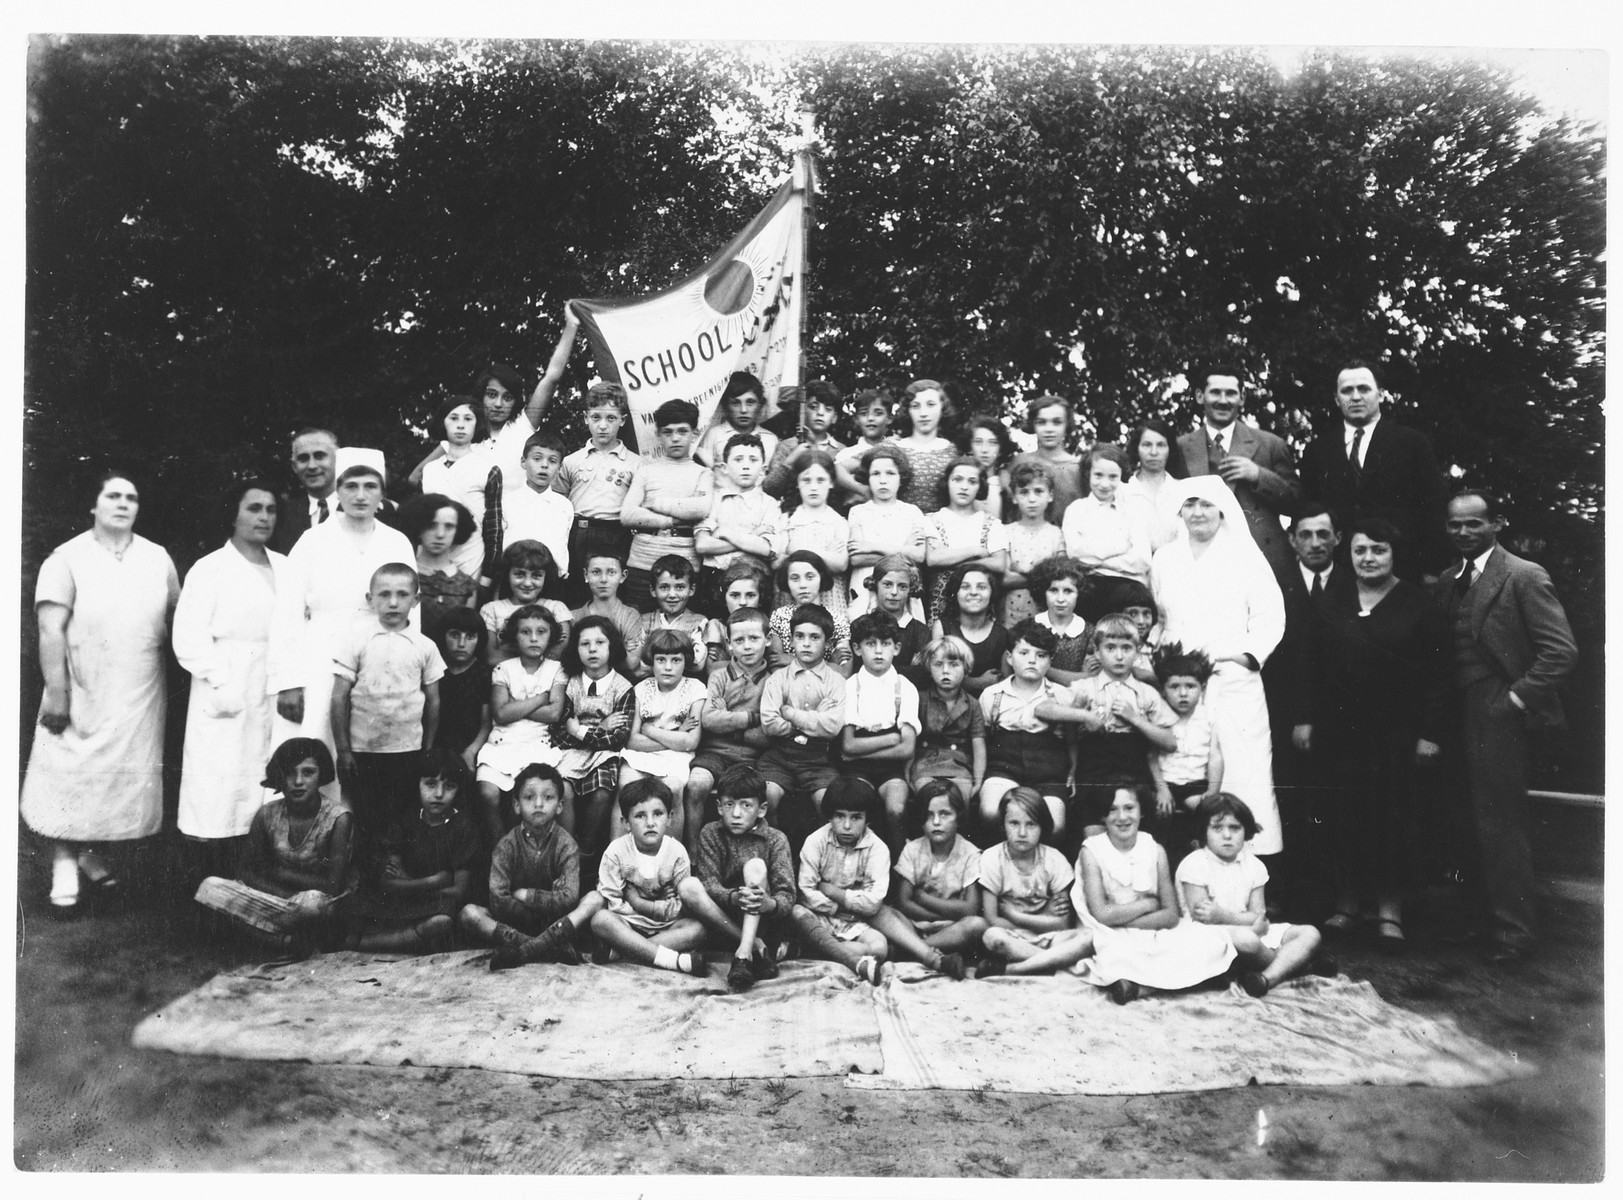 Group portrait of children Jewish Zugob school, sponsored by the Jewish Artisan Association. It was founded in part by Emmanuel Rubinstein. He was also director of the shul.   Among those pictured is Lea Rubinstein, in the front row, second from right.